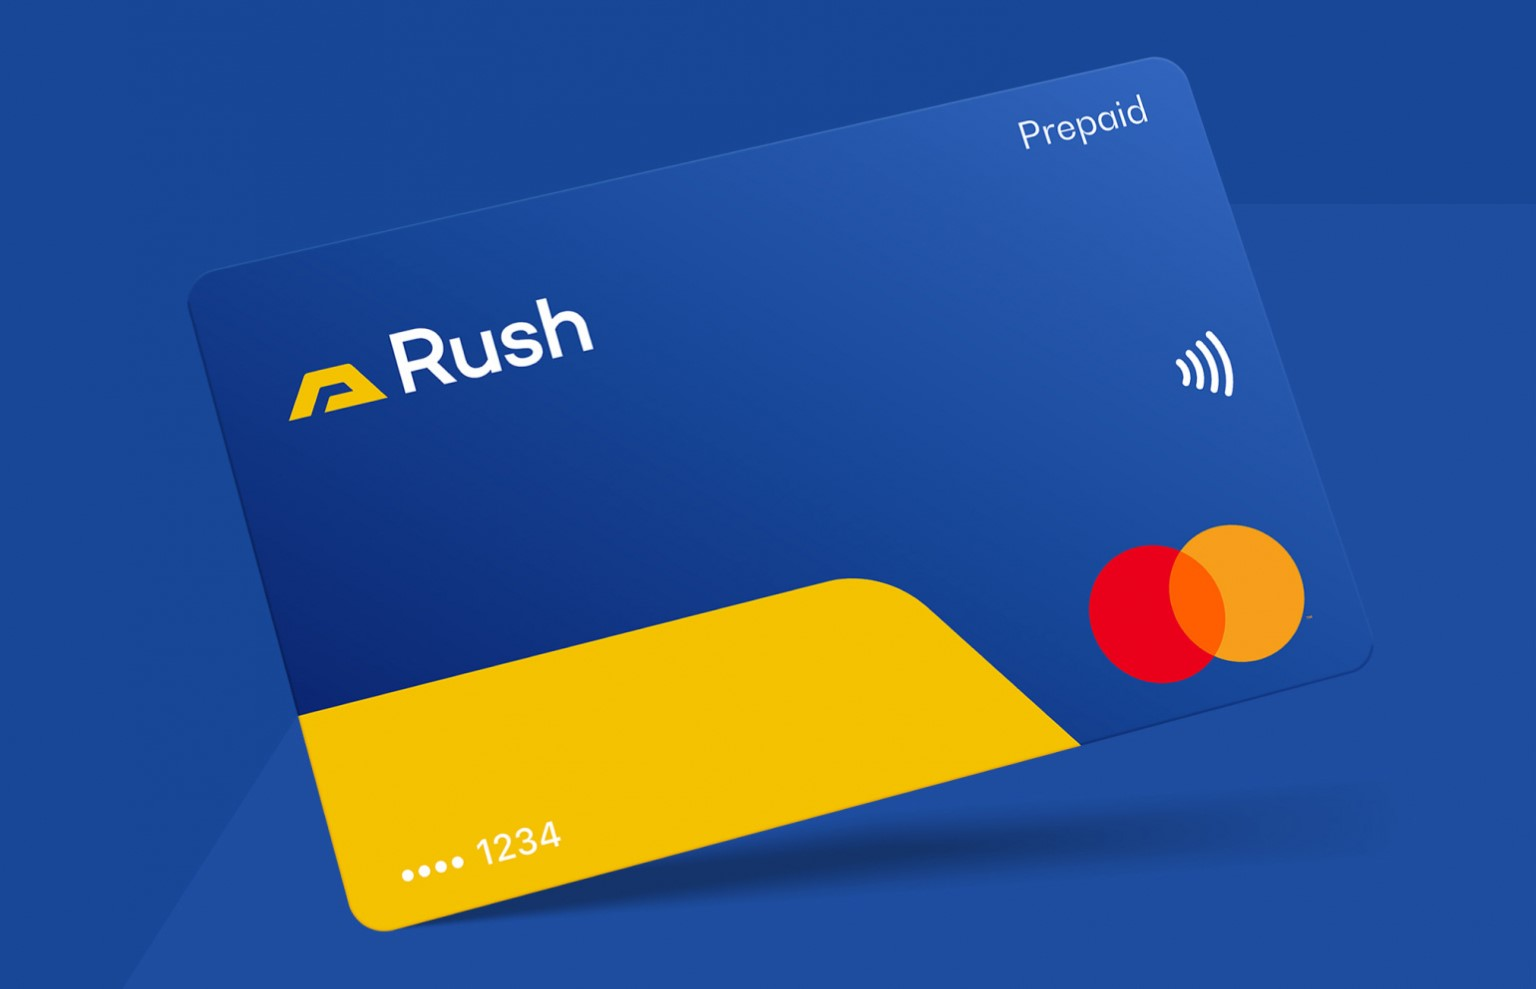 Rush Gold and EML start a gold rush with mobile wallet innovation